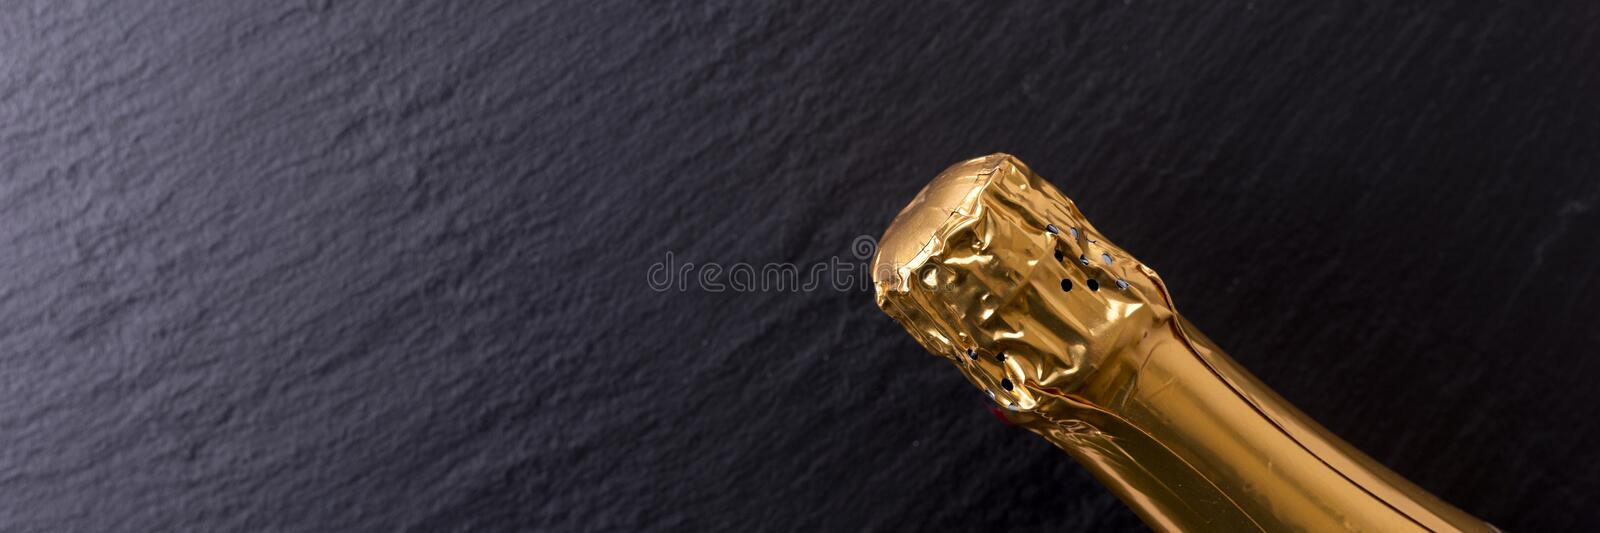 Panoramic image. Champagne bottle on black slate plate royalty free stock photography